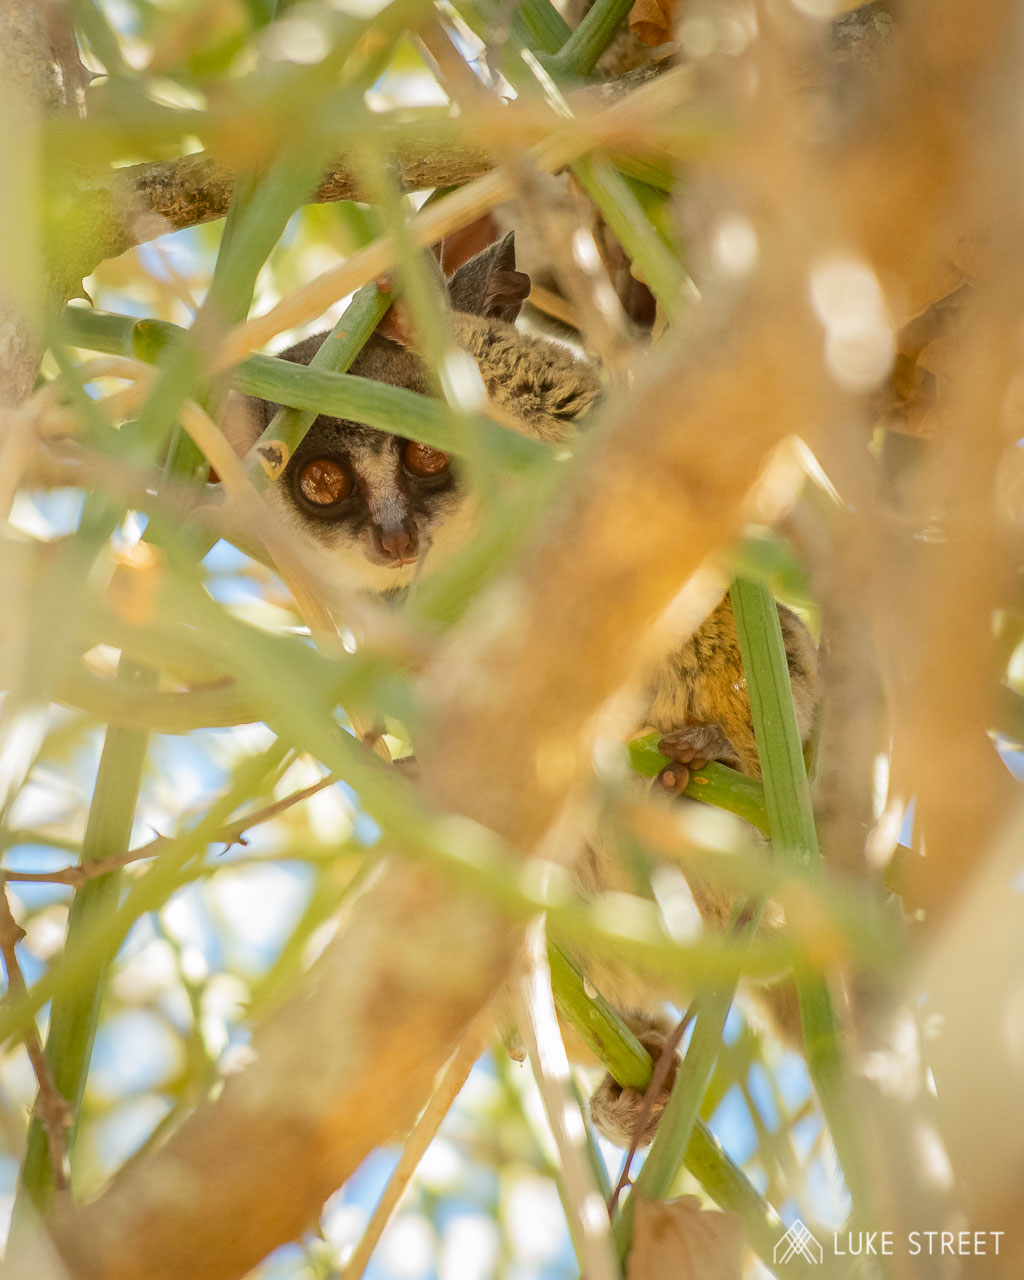 Tanda Tula - Bush baby hanging out in the Greater Kruger